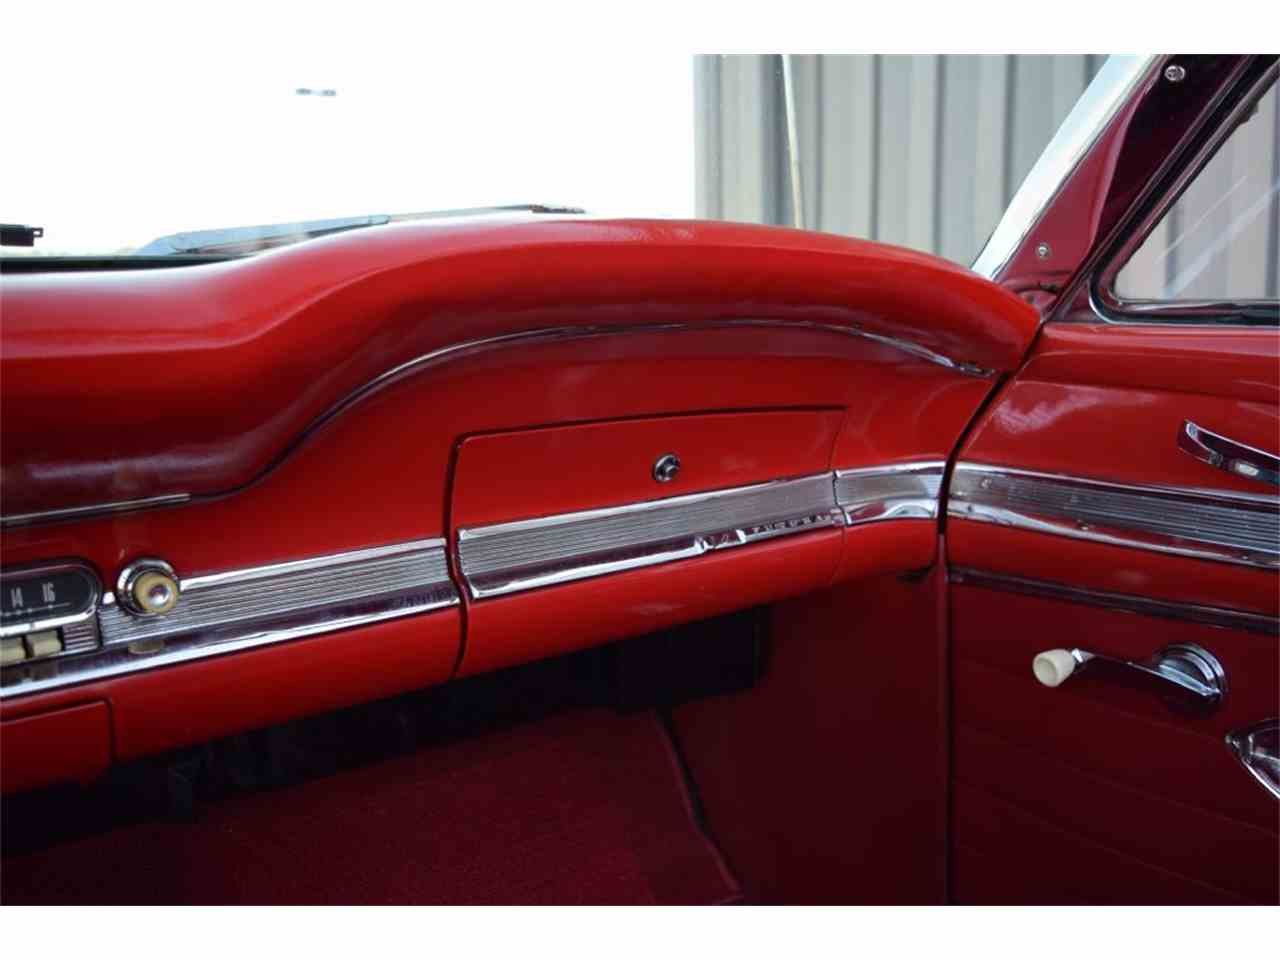 Large Picture of 1963 Falcon Futura located in Iowa - $24,900.00 Offered by Jensen Dealerships - LUN9